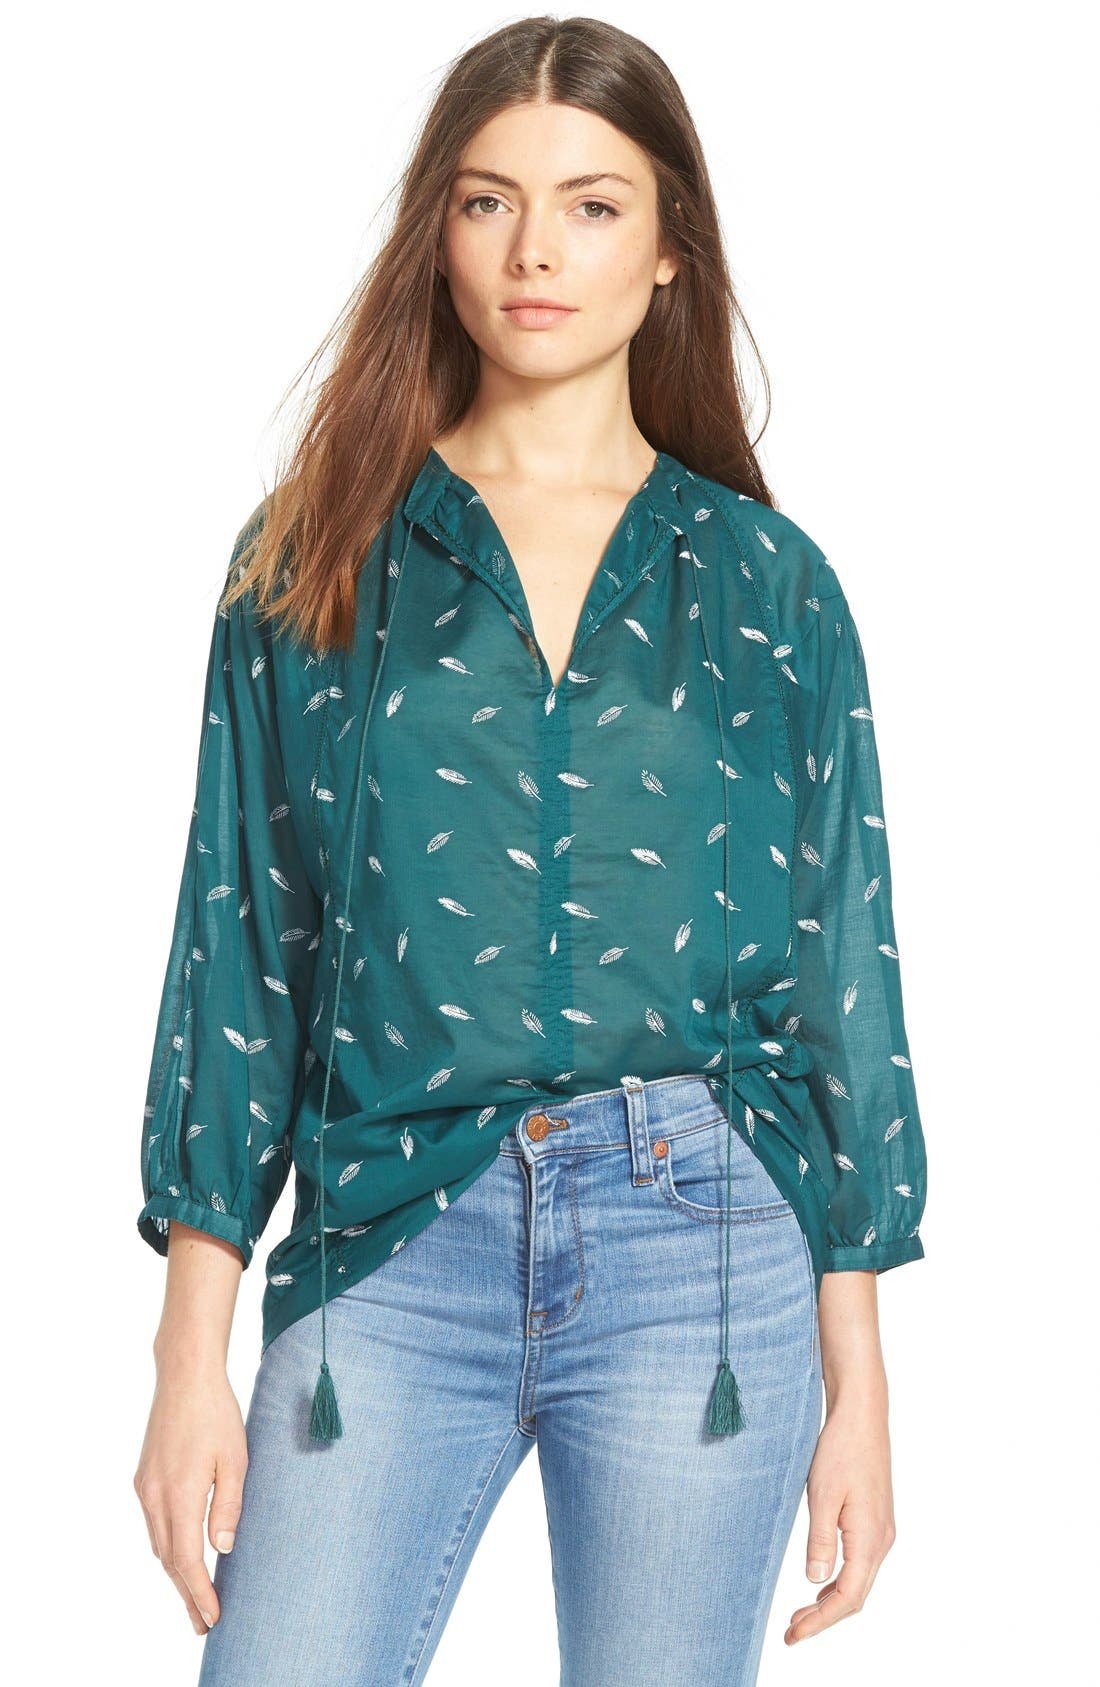 Alternate Image 1 Selected - Madewell 'Fall Feathers' Tie Neck Peasant Blouse